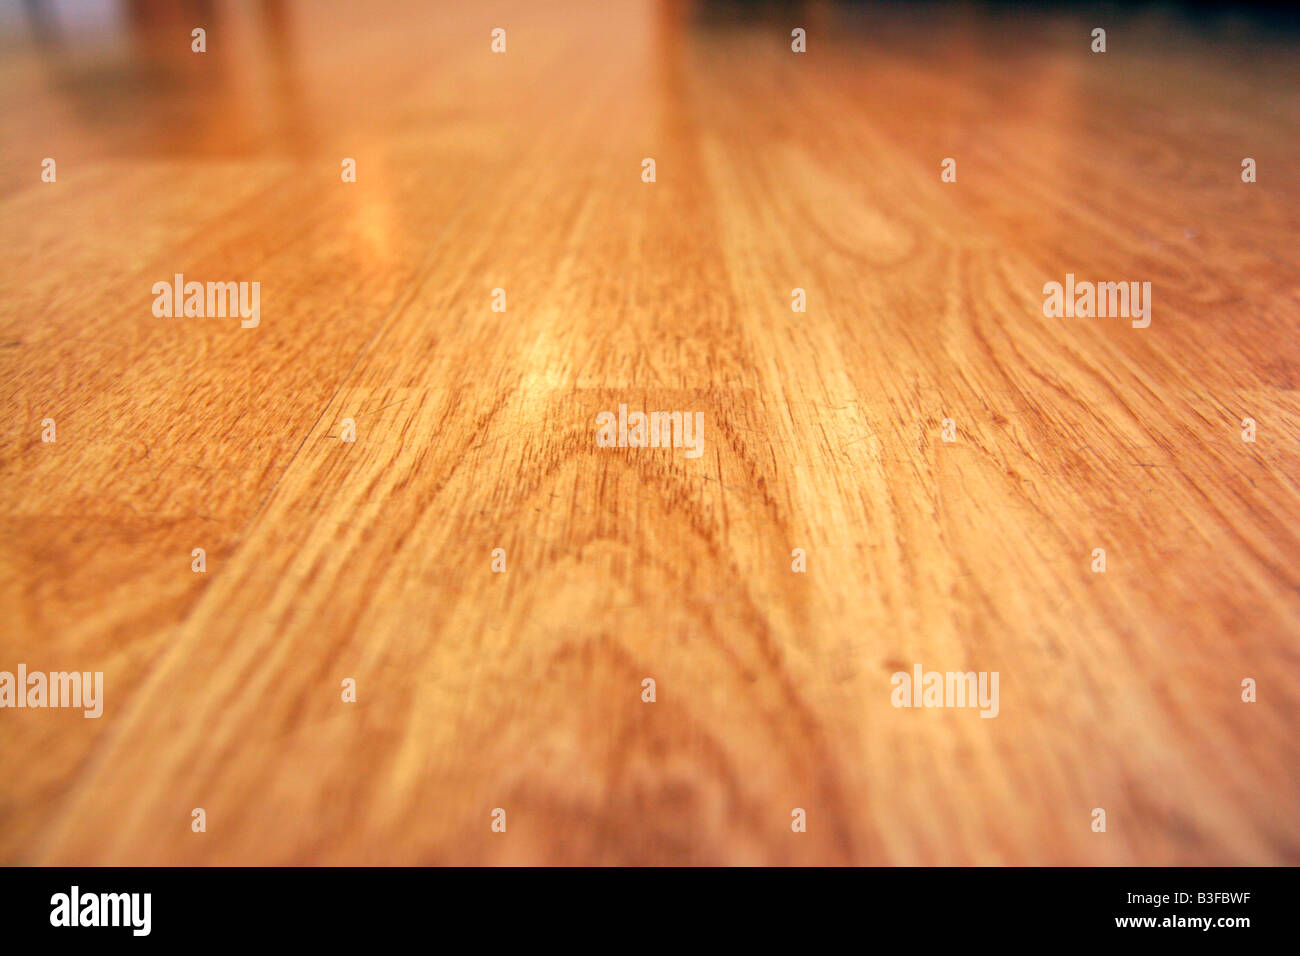 Wooden laminate floor detail - Stock Image